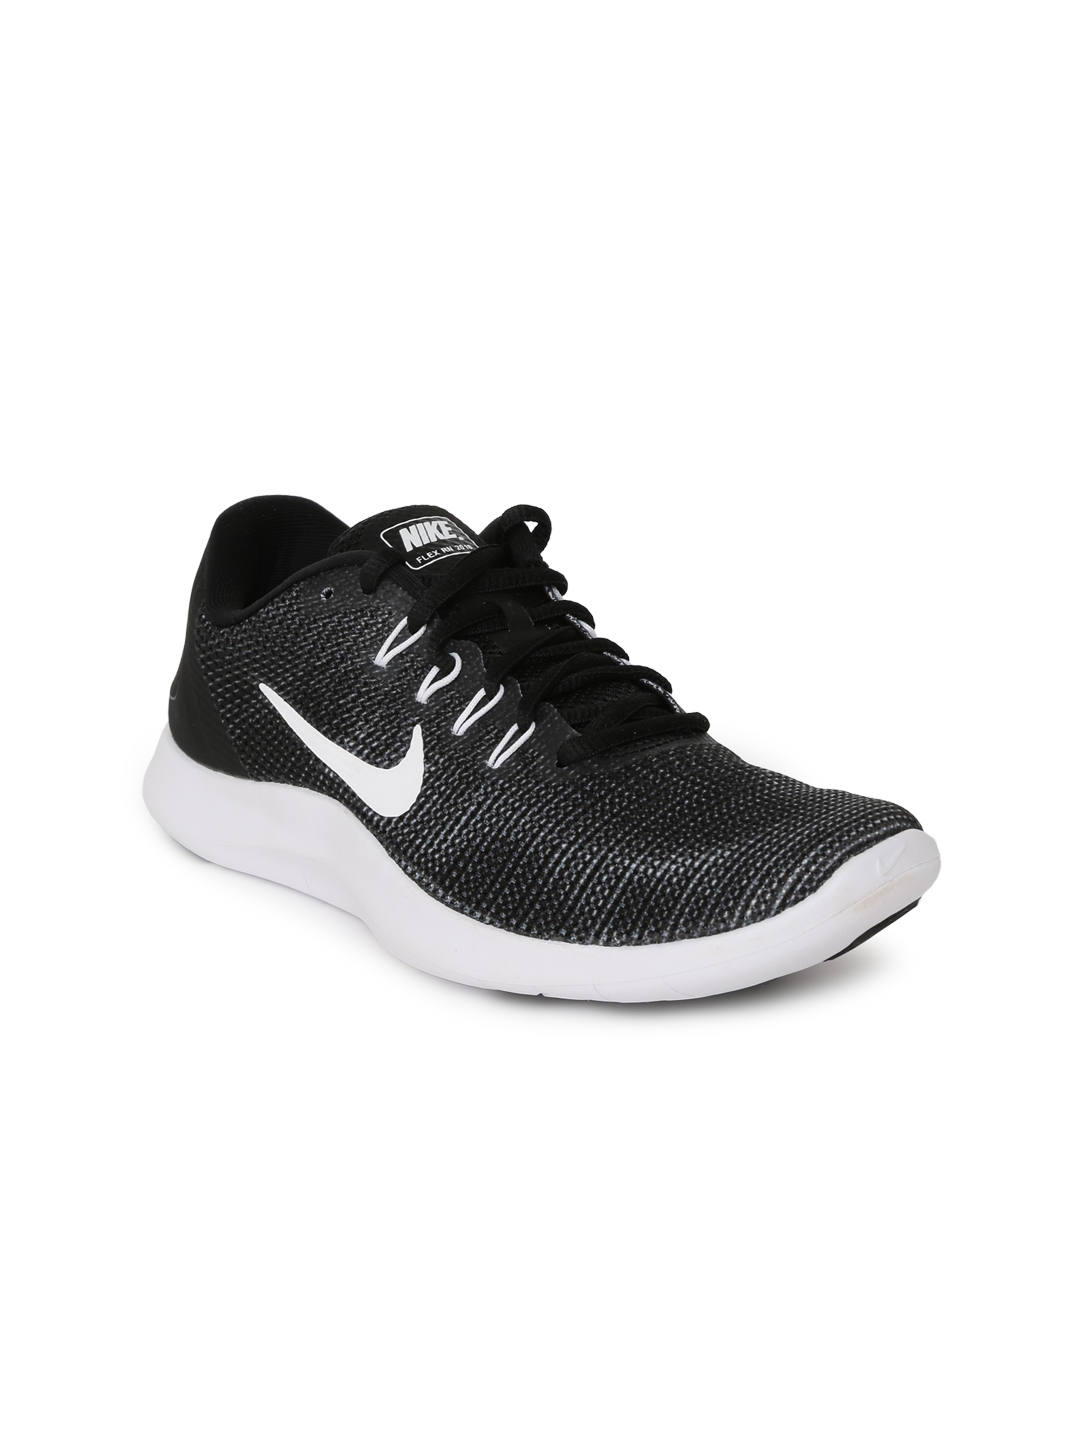 ba144f1a42441 Buy Nike Women Black Flex RN 2018 Running Shoes - Sports Shoes for ...